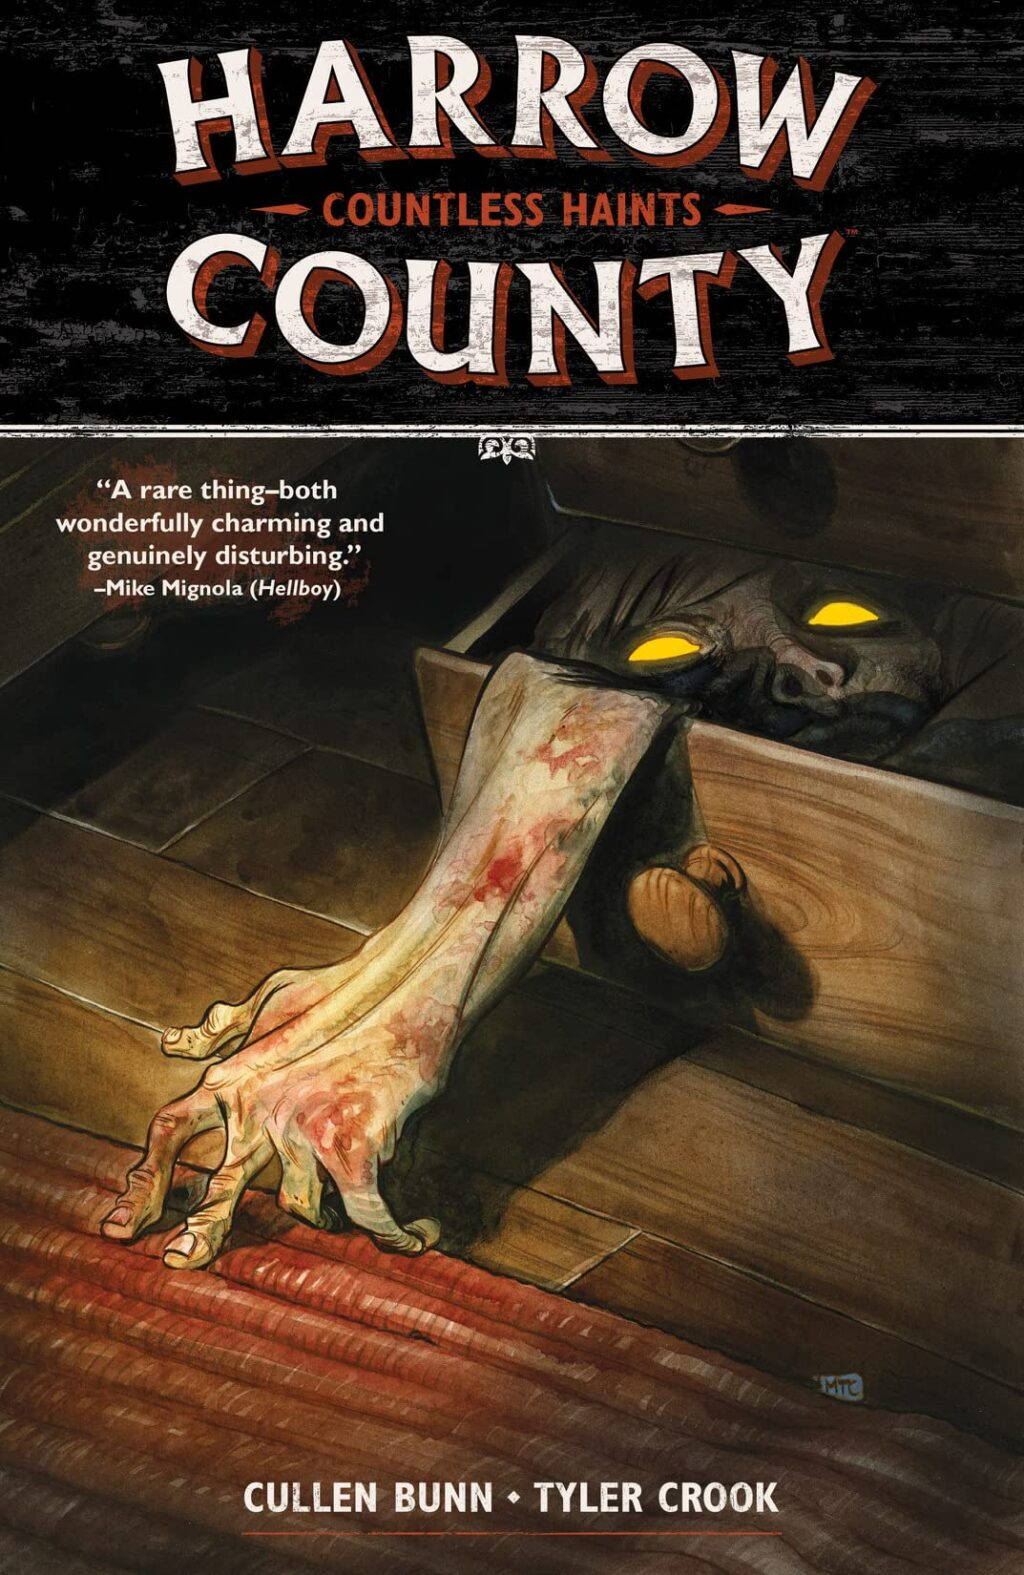 6 Harrow County 1024x1575 - More Cursed Pages: Another 6 Comics for Horror Fans